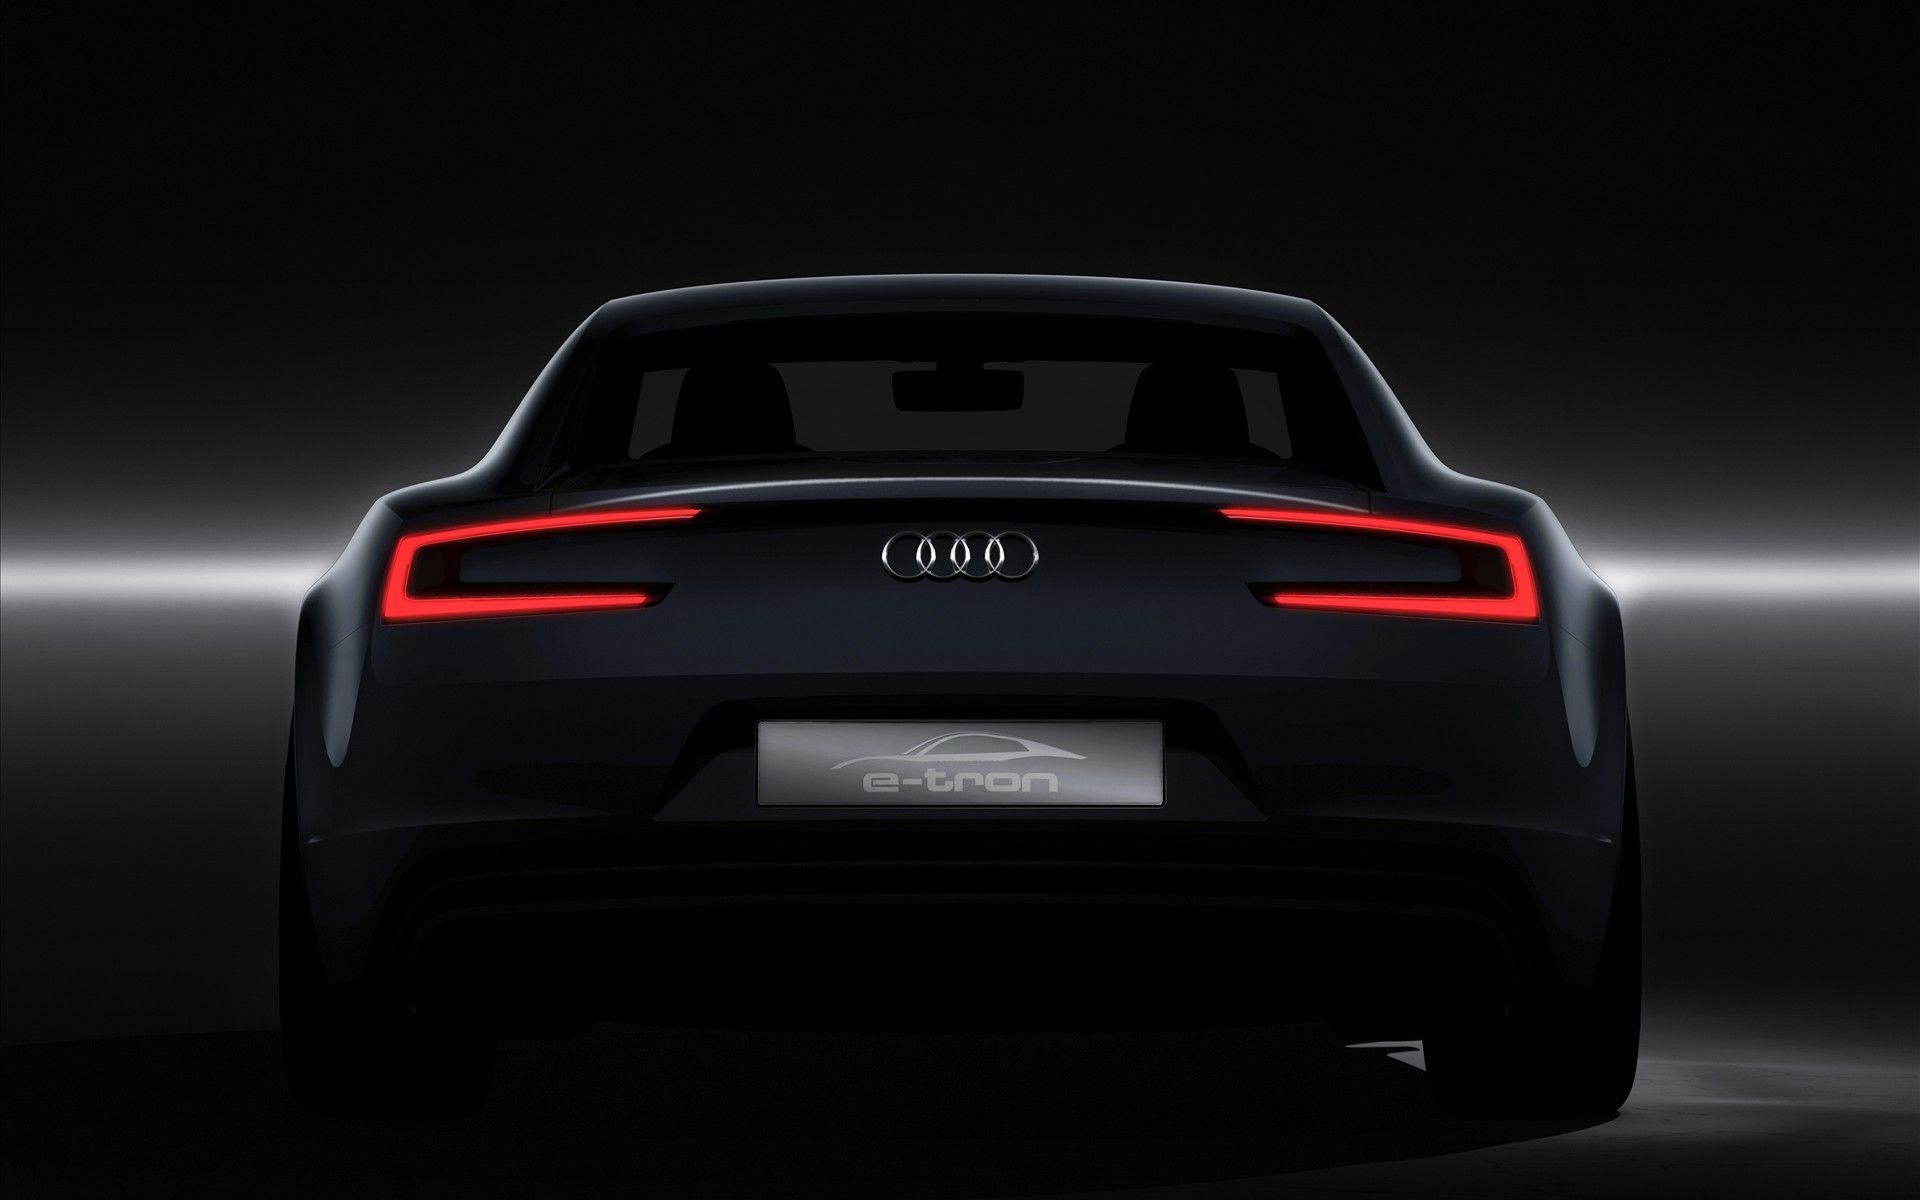 Audi Wallpaper For Android For Desktop Wallpaper 1920 X 1200 Px